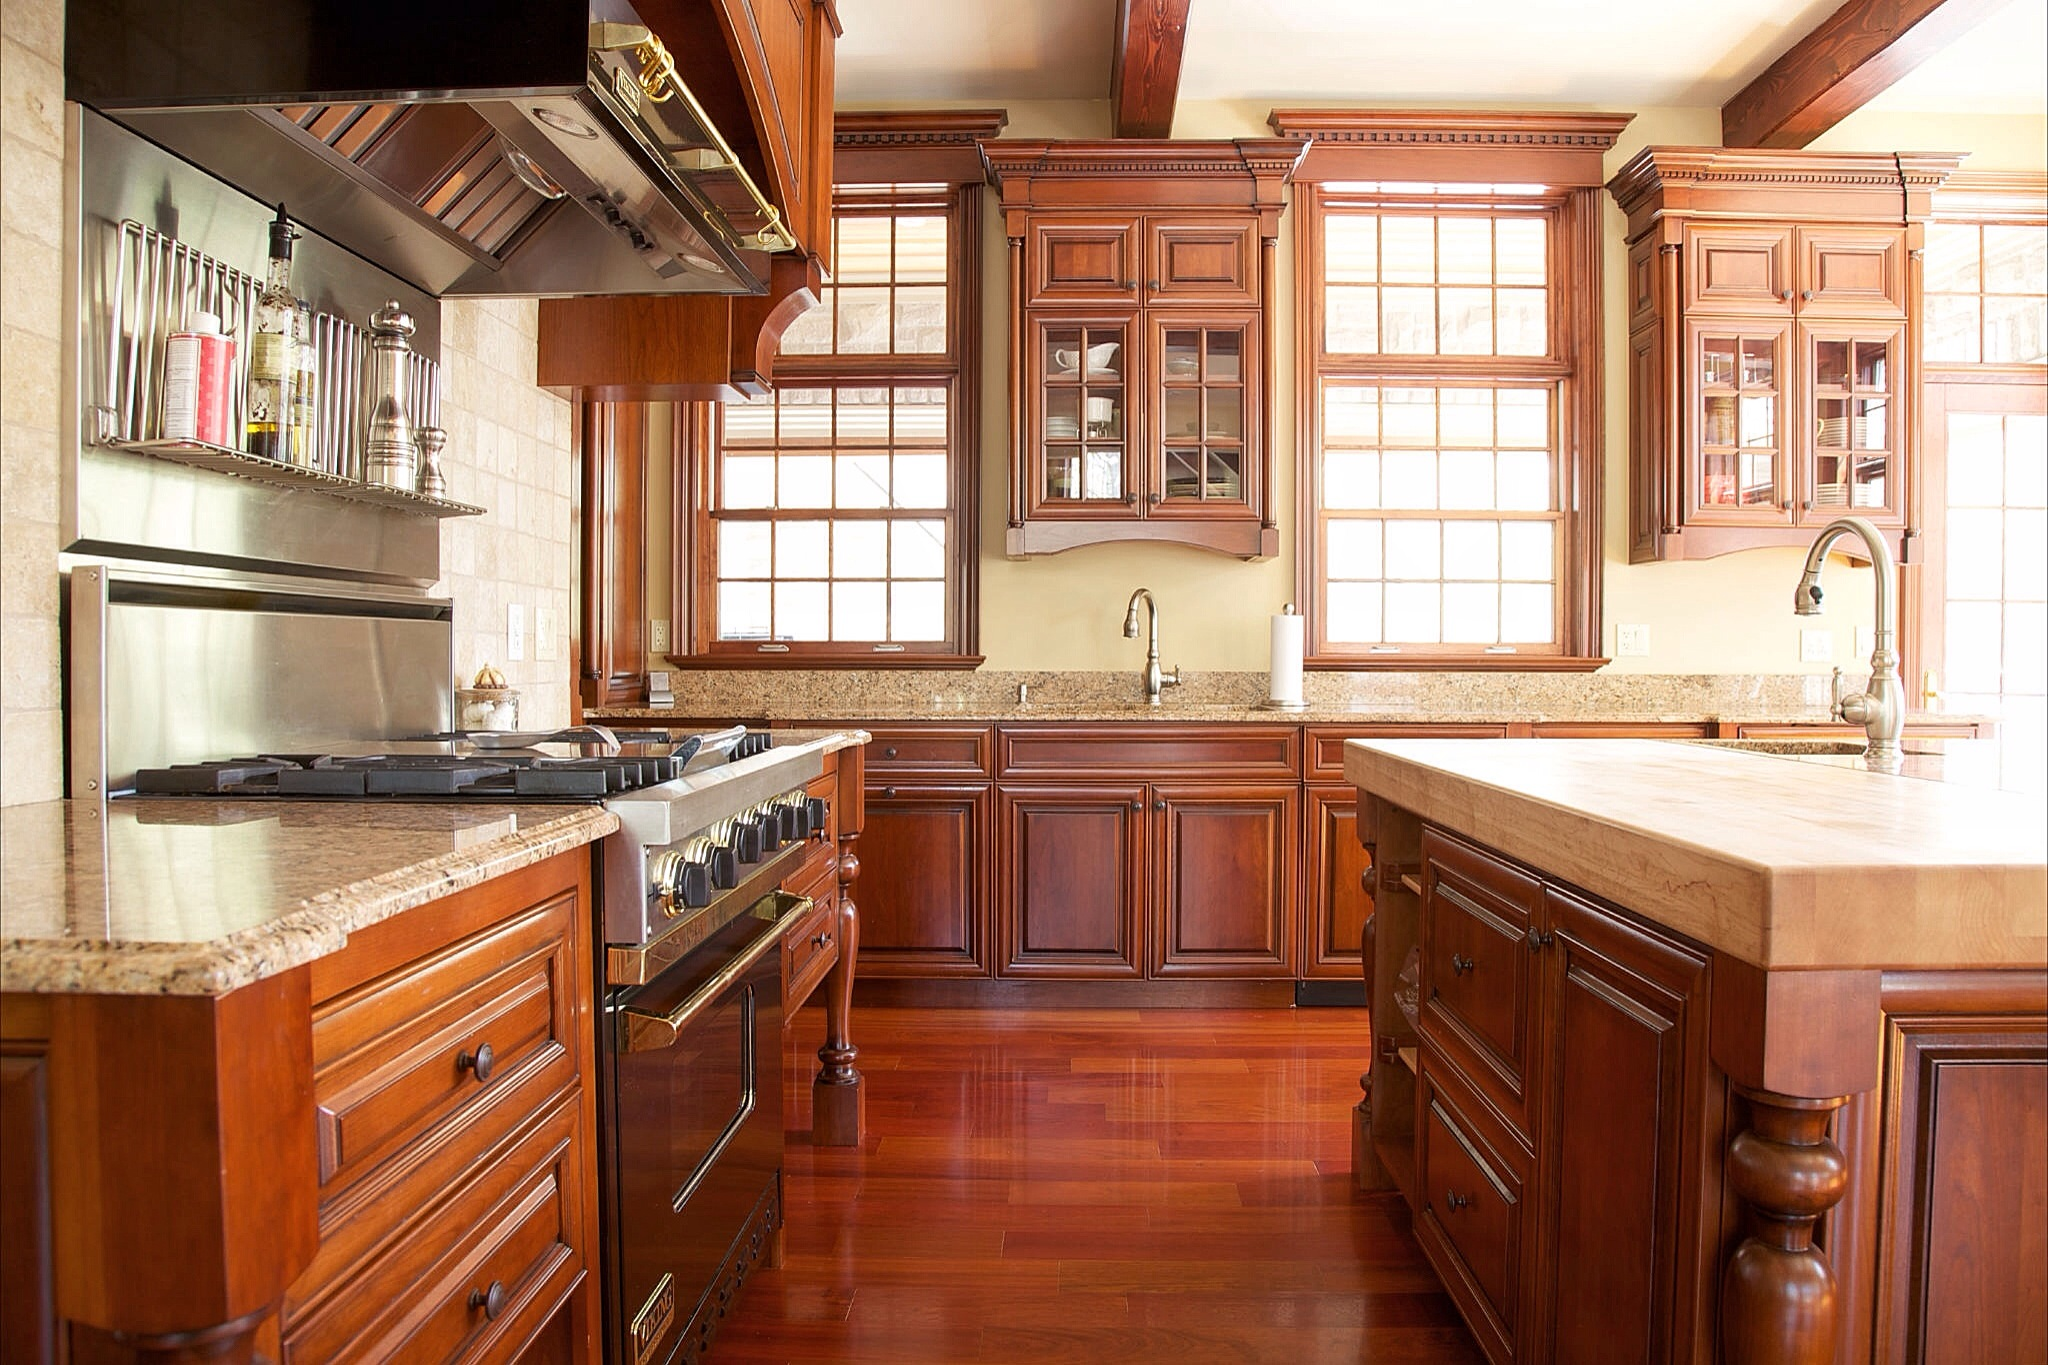 Barr cabinets custom kitchen cabinetry in kingston ontario for Kitchen design kingston